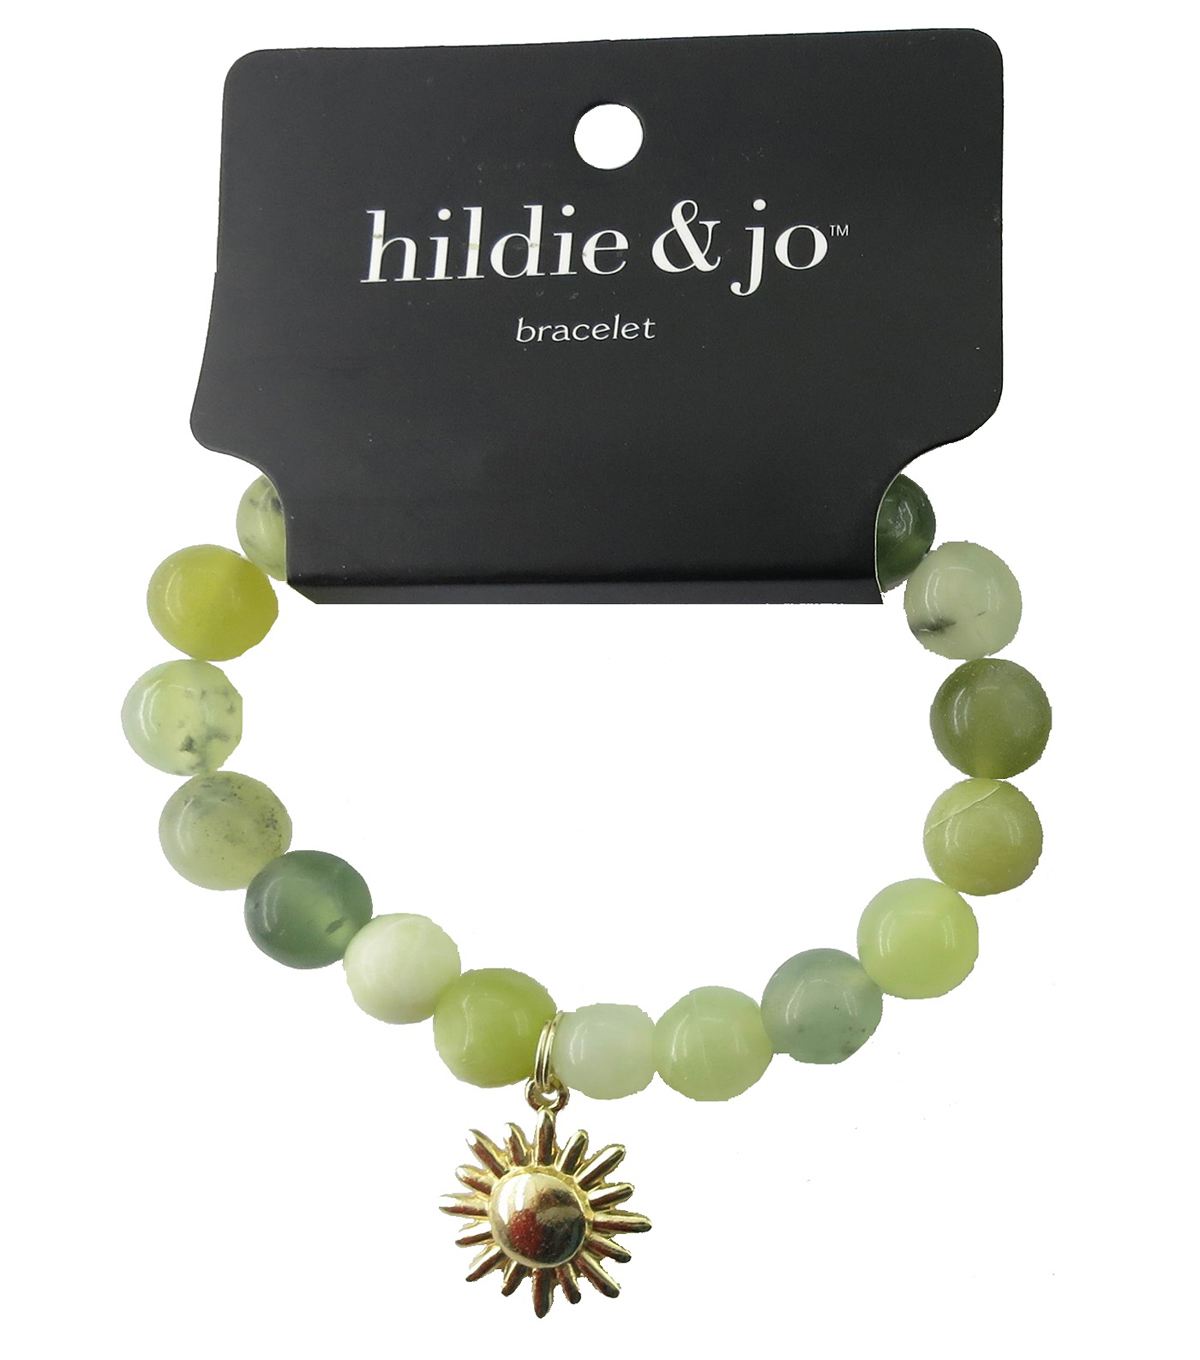 hildie & jo Beads Stretch Bracelet-Ivory & Green with Gold Charm